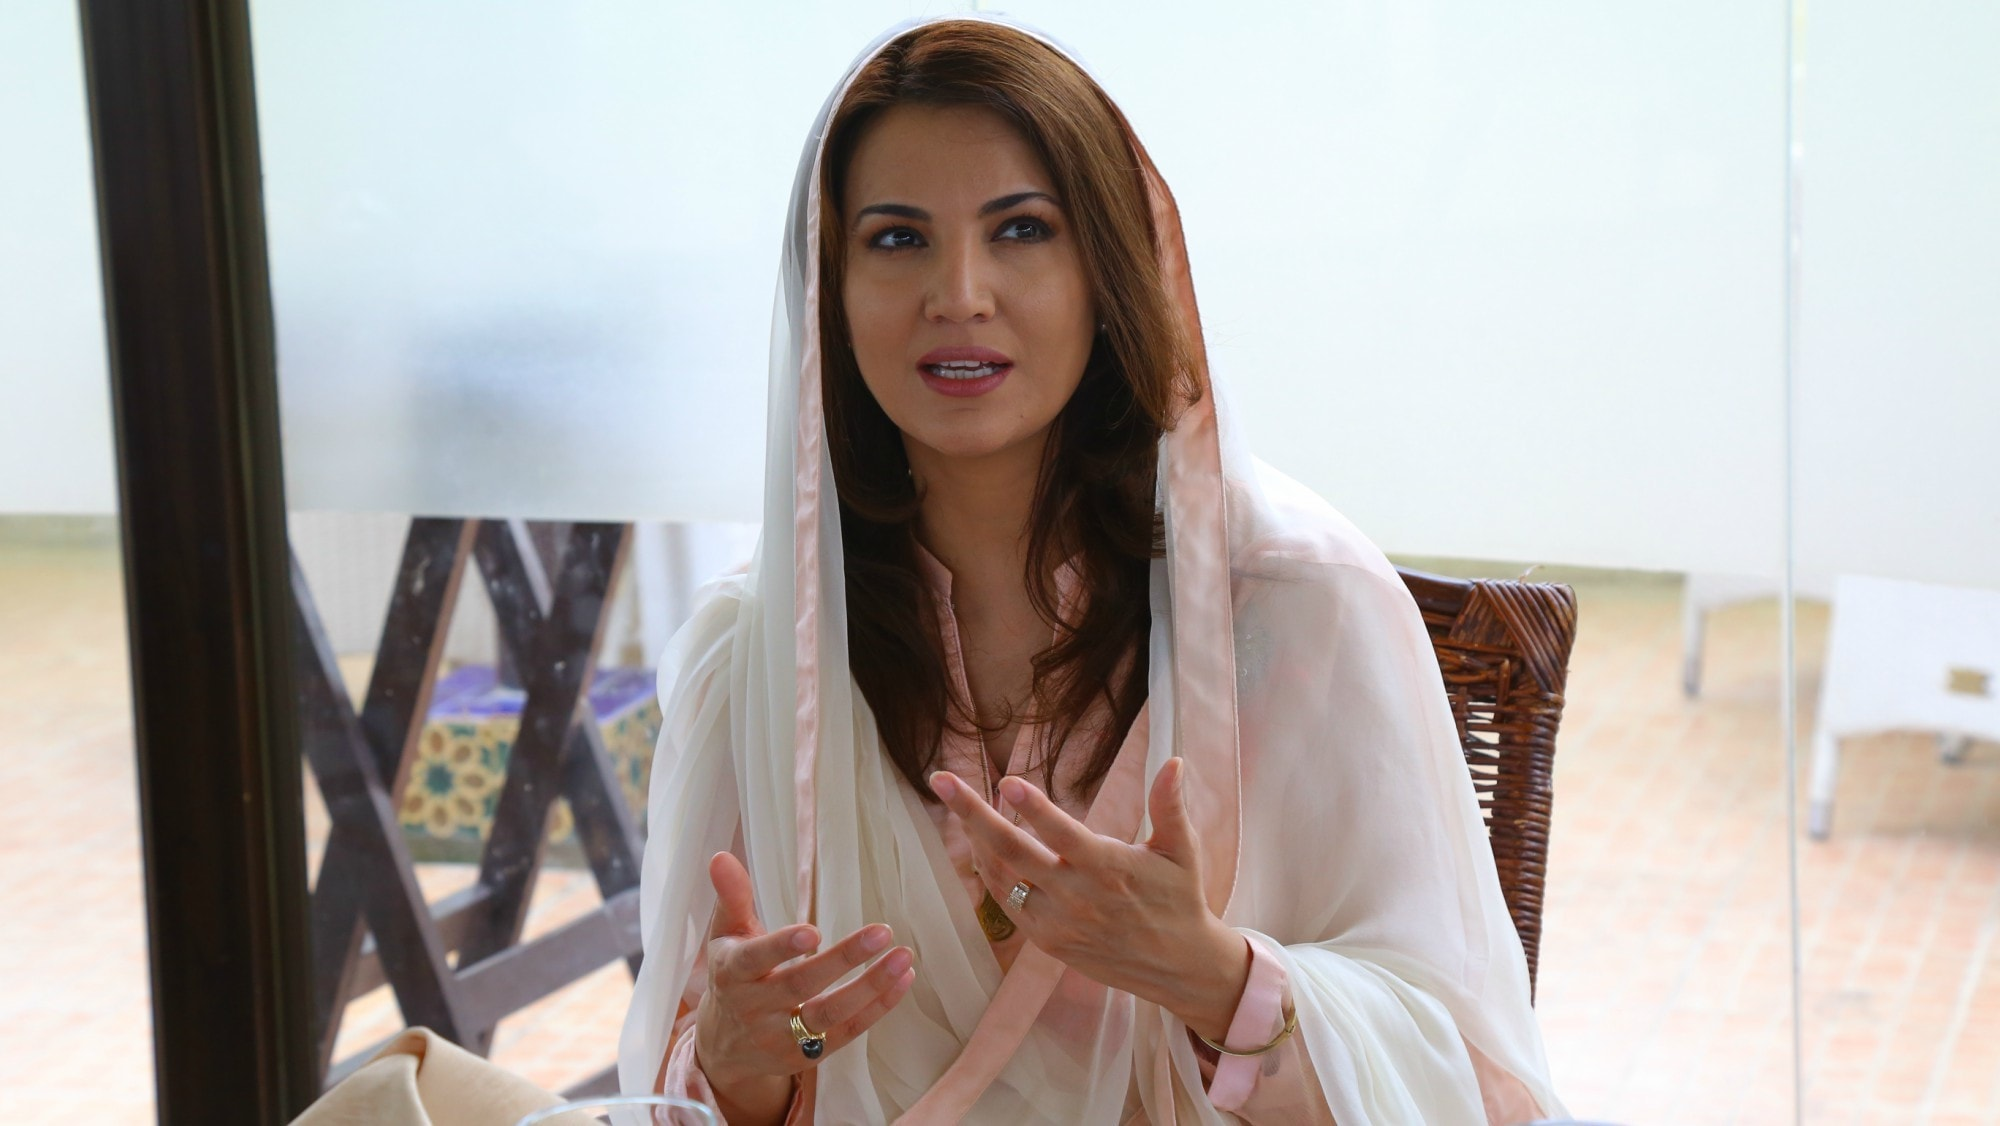 It wasn't easy to find funding for a film like Jaanan, shares Reham